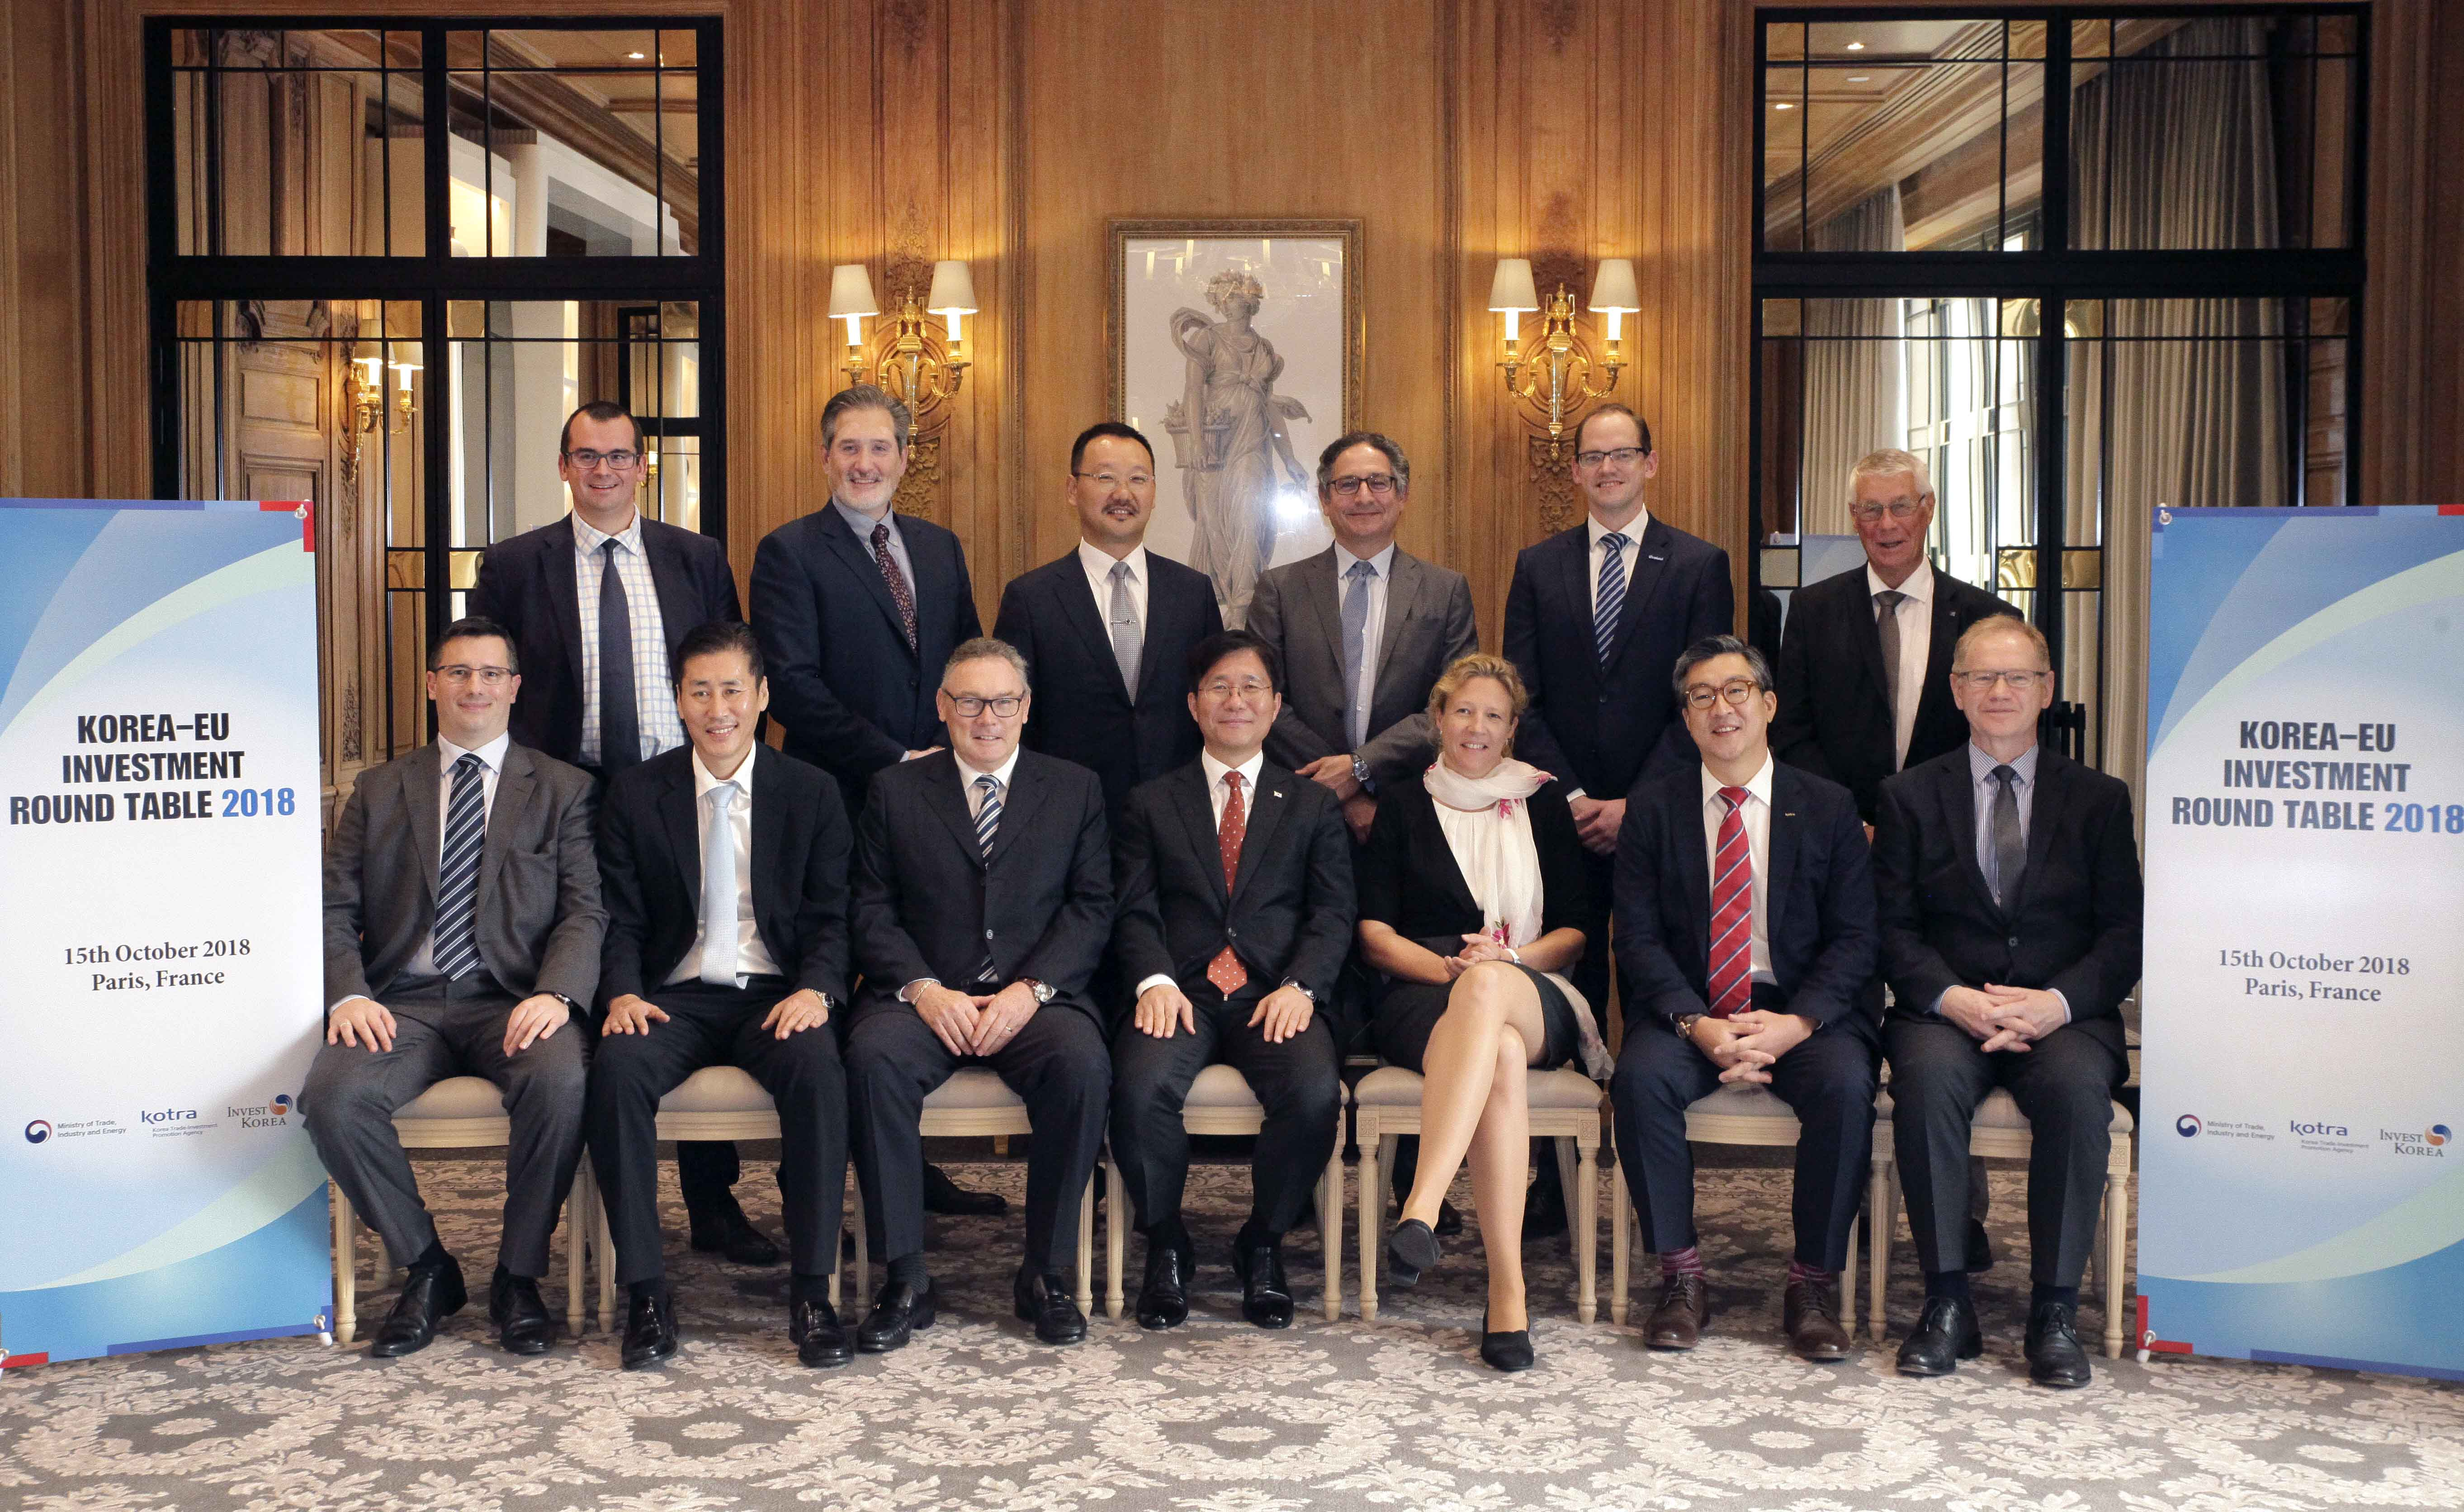 Minister Sung hosts Korea-EU Investment Roundtable 2018 in Paris